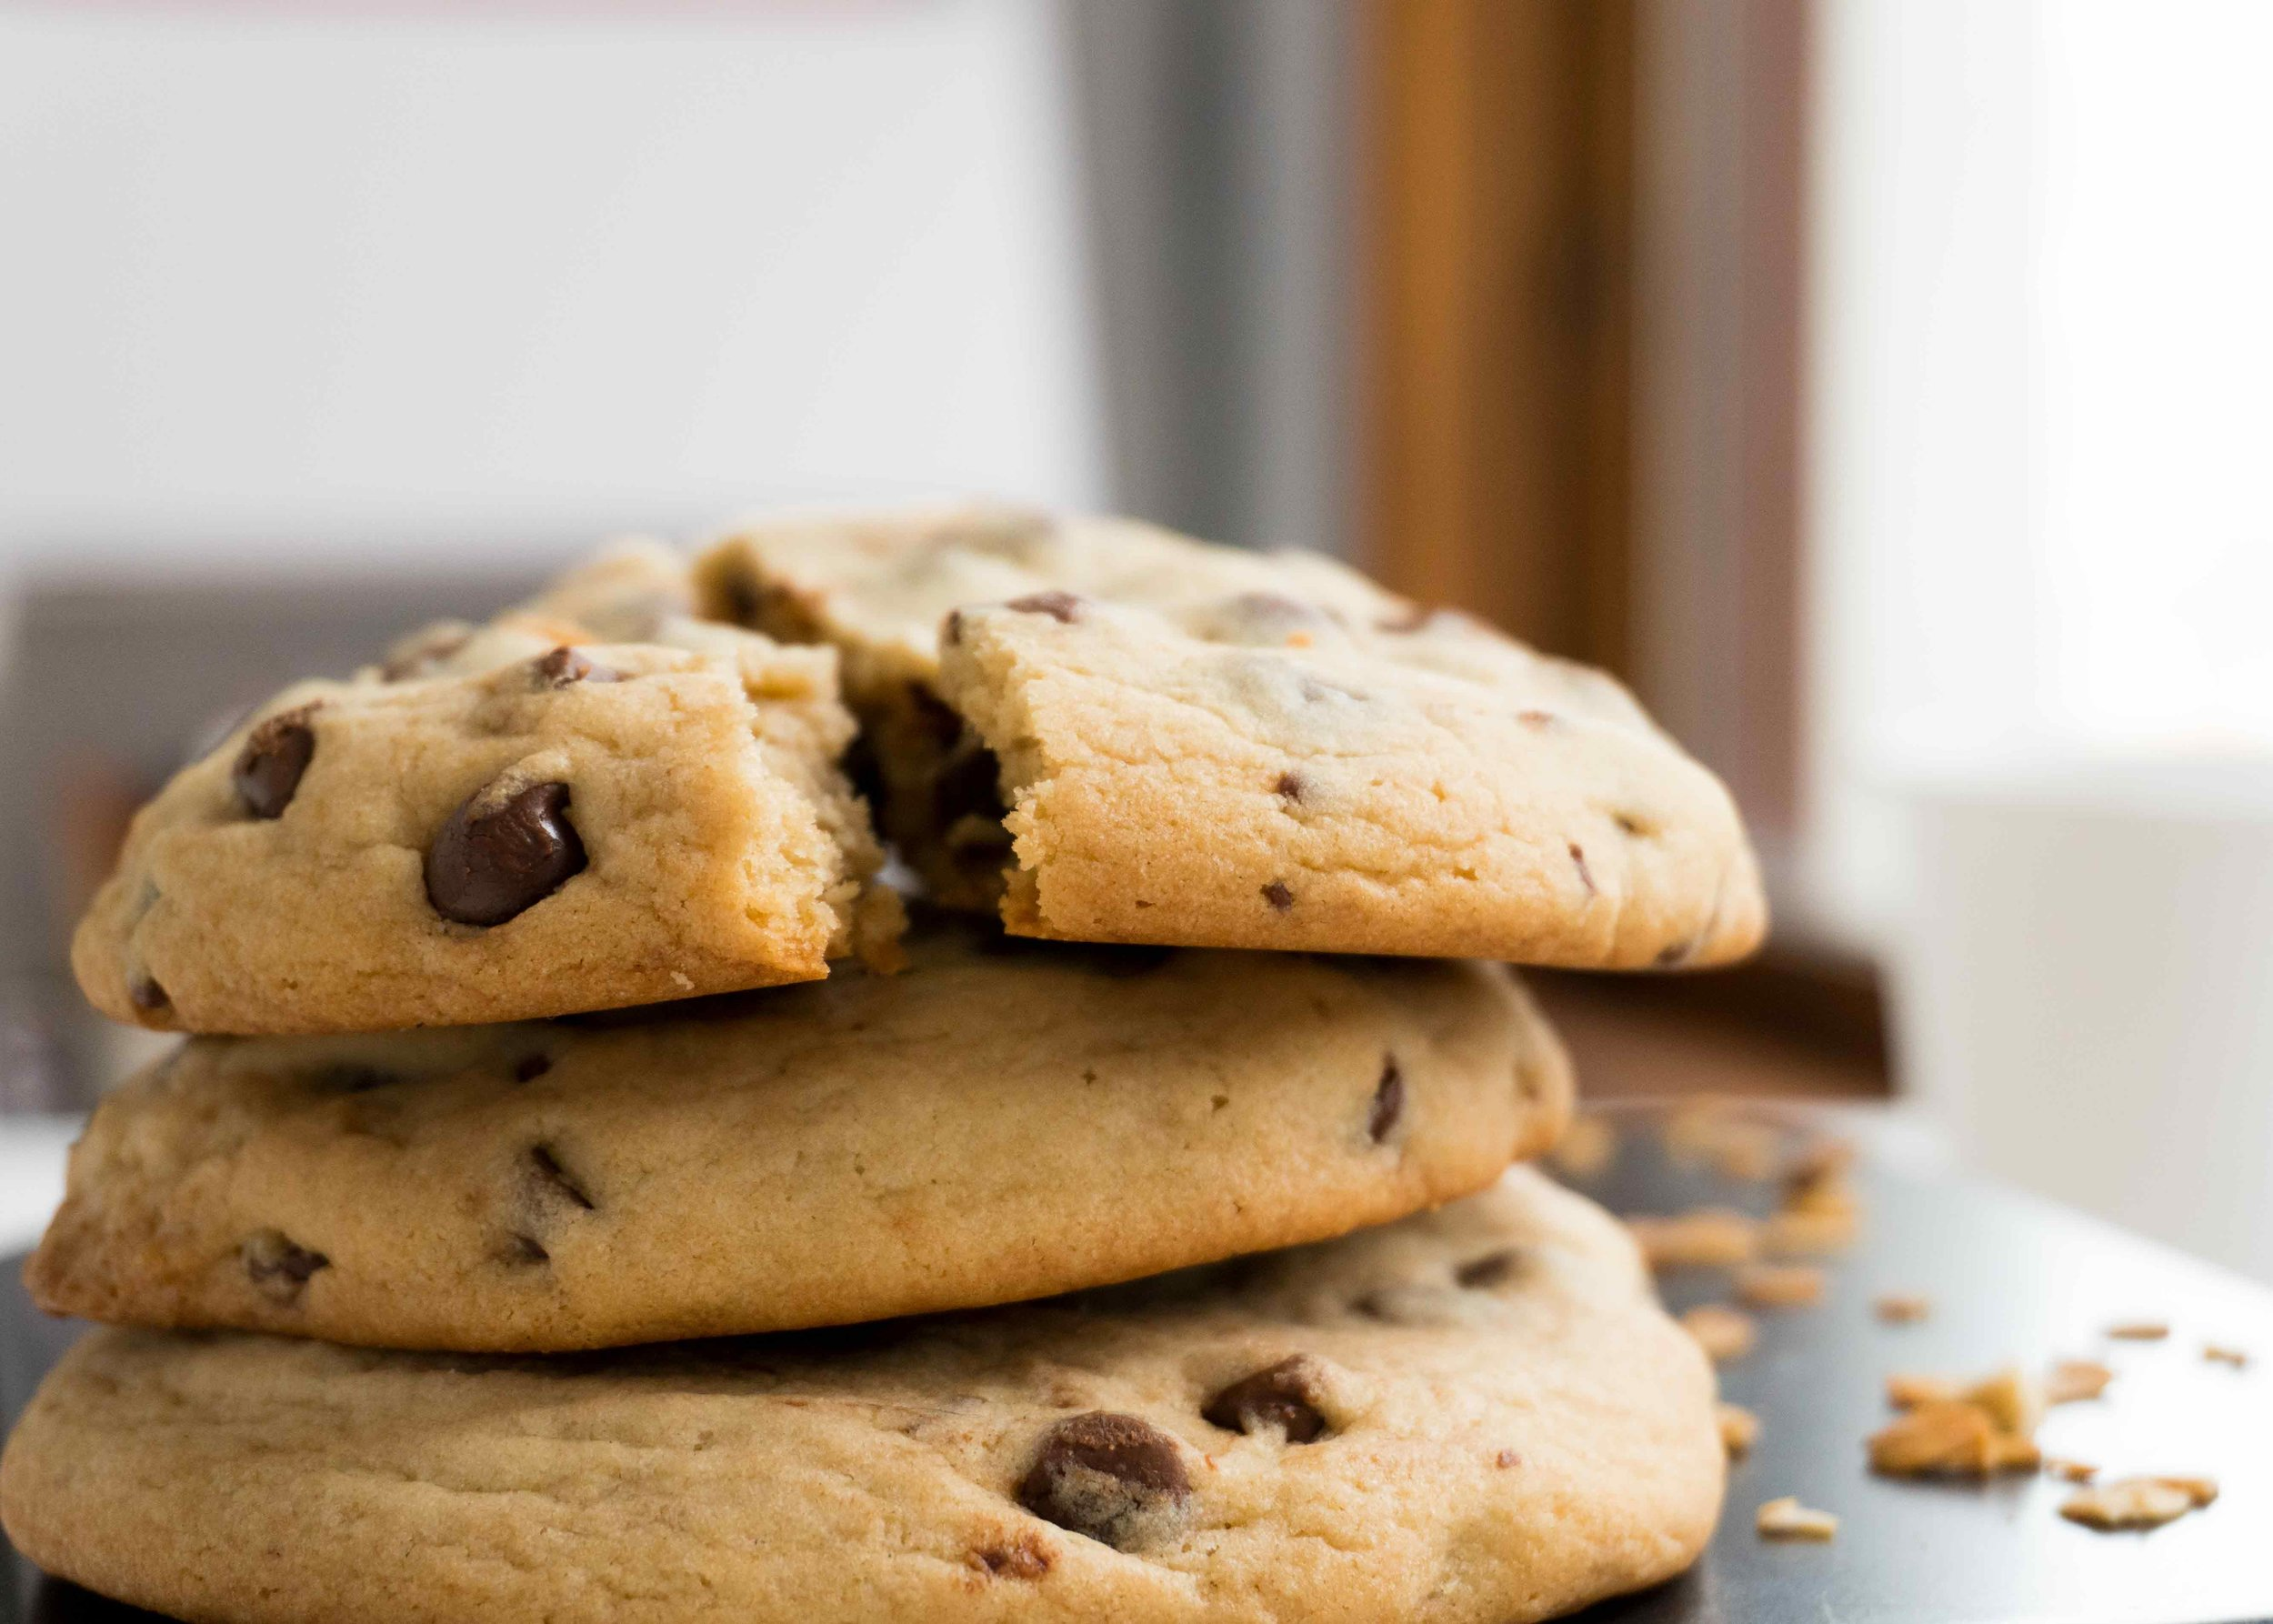 - Beth's Chocolate Chip Cookie